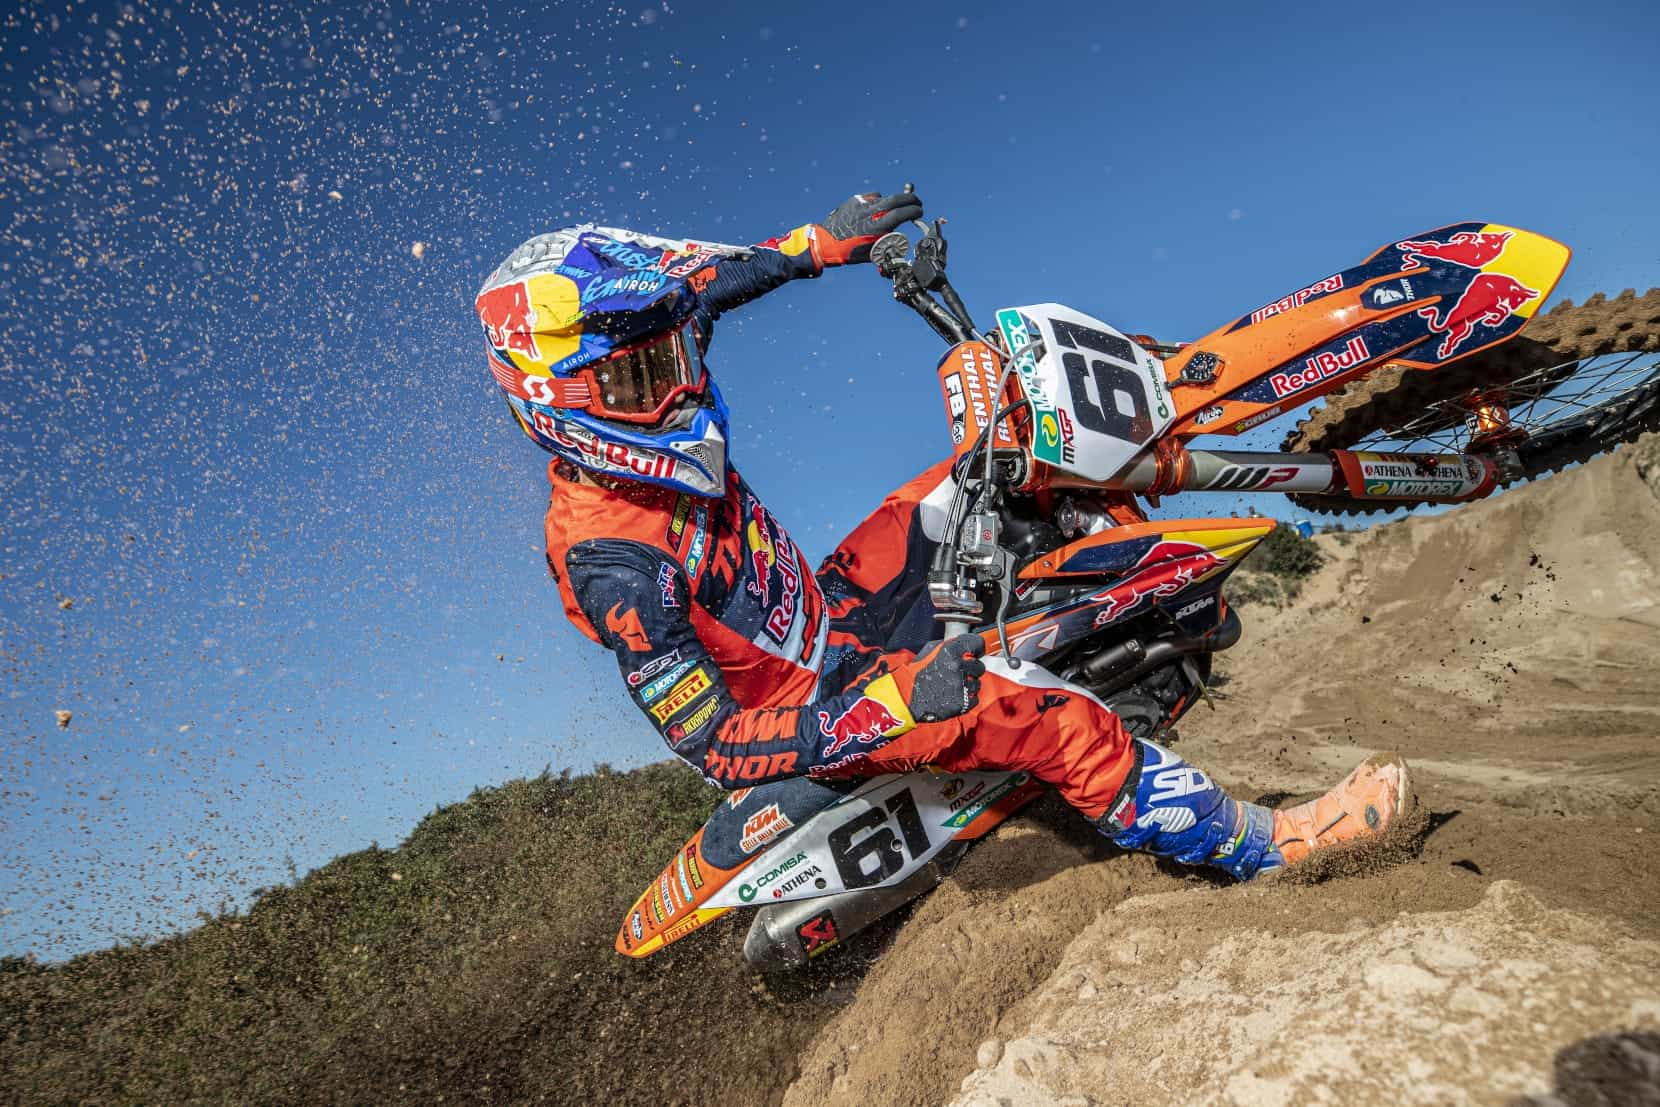 Ready To Race: Jorge Prado